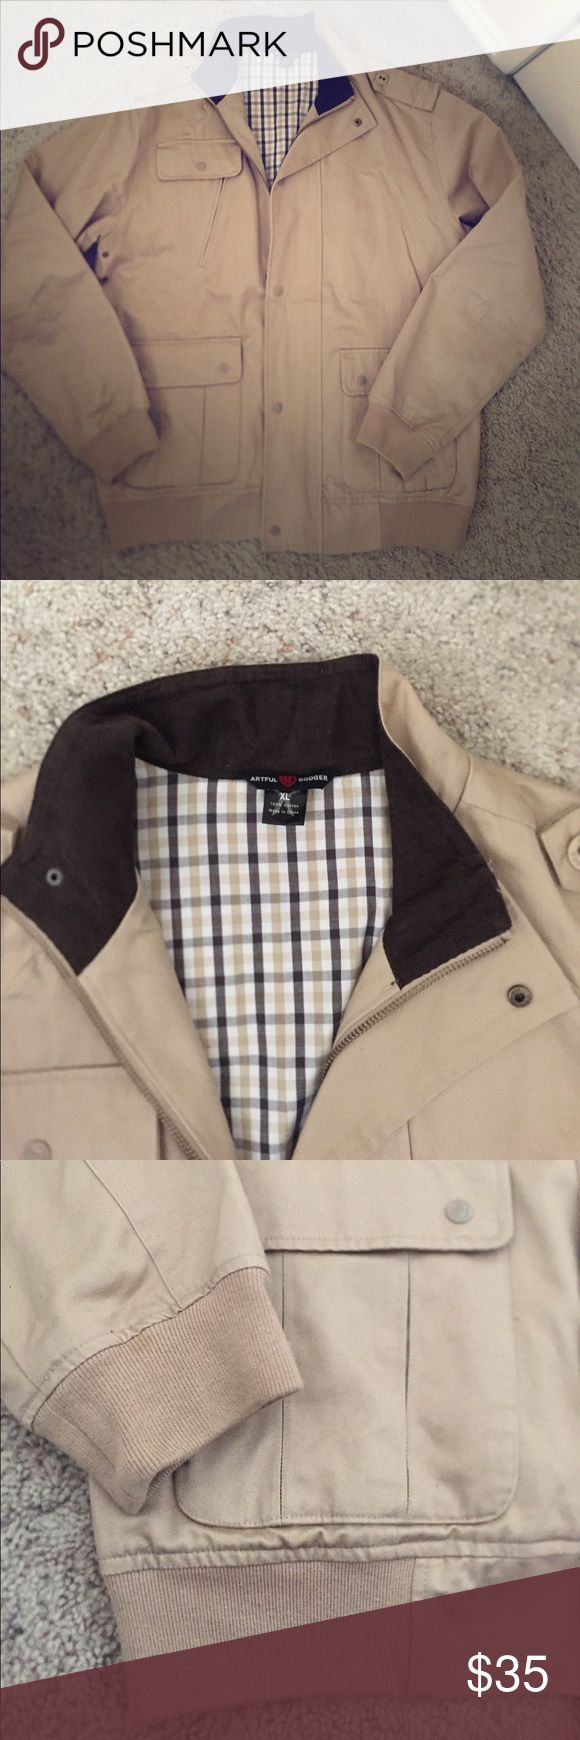 Men's ARTFUL DODGER Khaki Bomber Jacket Men's ARTFUL DODGER Khaki Bomber Jacket in size XL. Lots of pockets on the inside and outside. Zipper and snap button closures. In brand new condition! Artful Dodger Jackets & Coats Bomber & Varsity